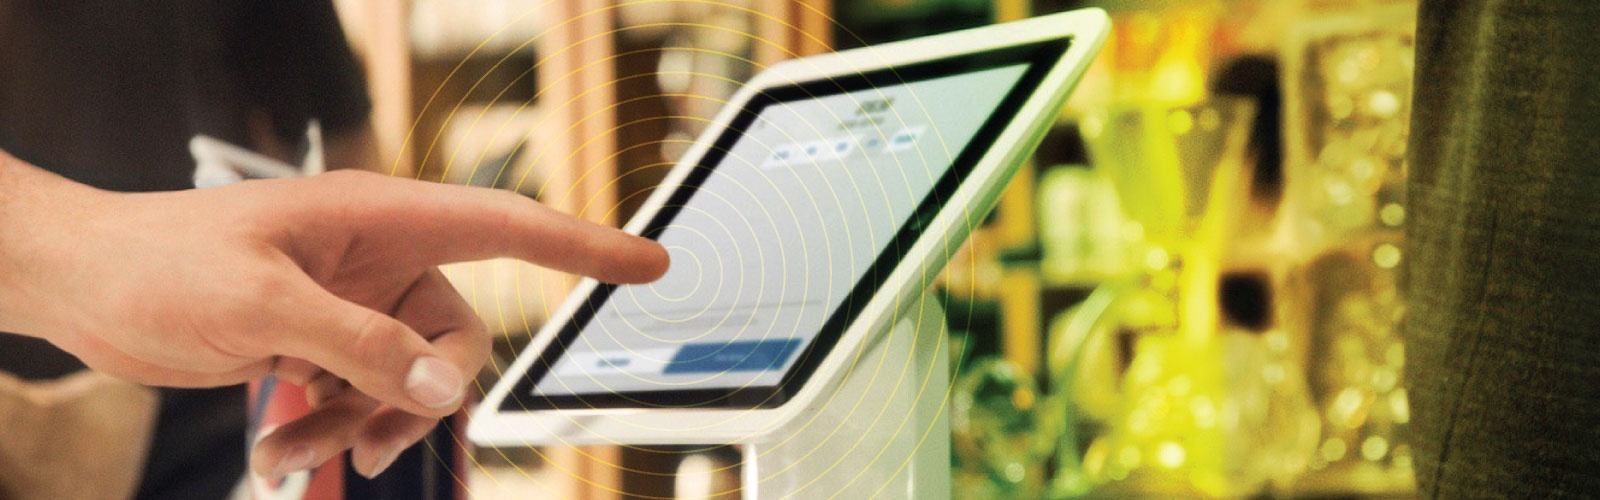 Close up photo of a customer entering information on a point of sale device